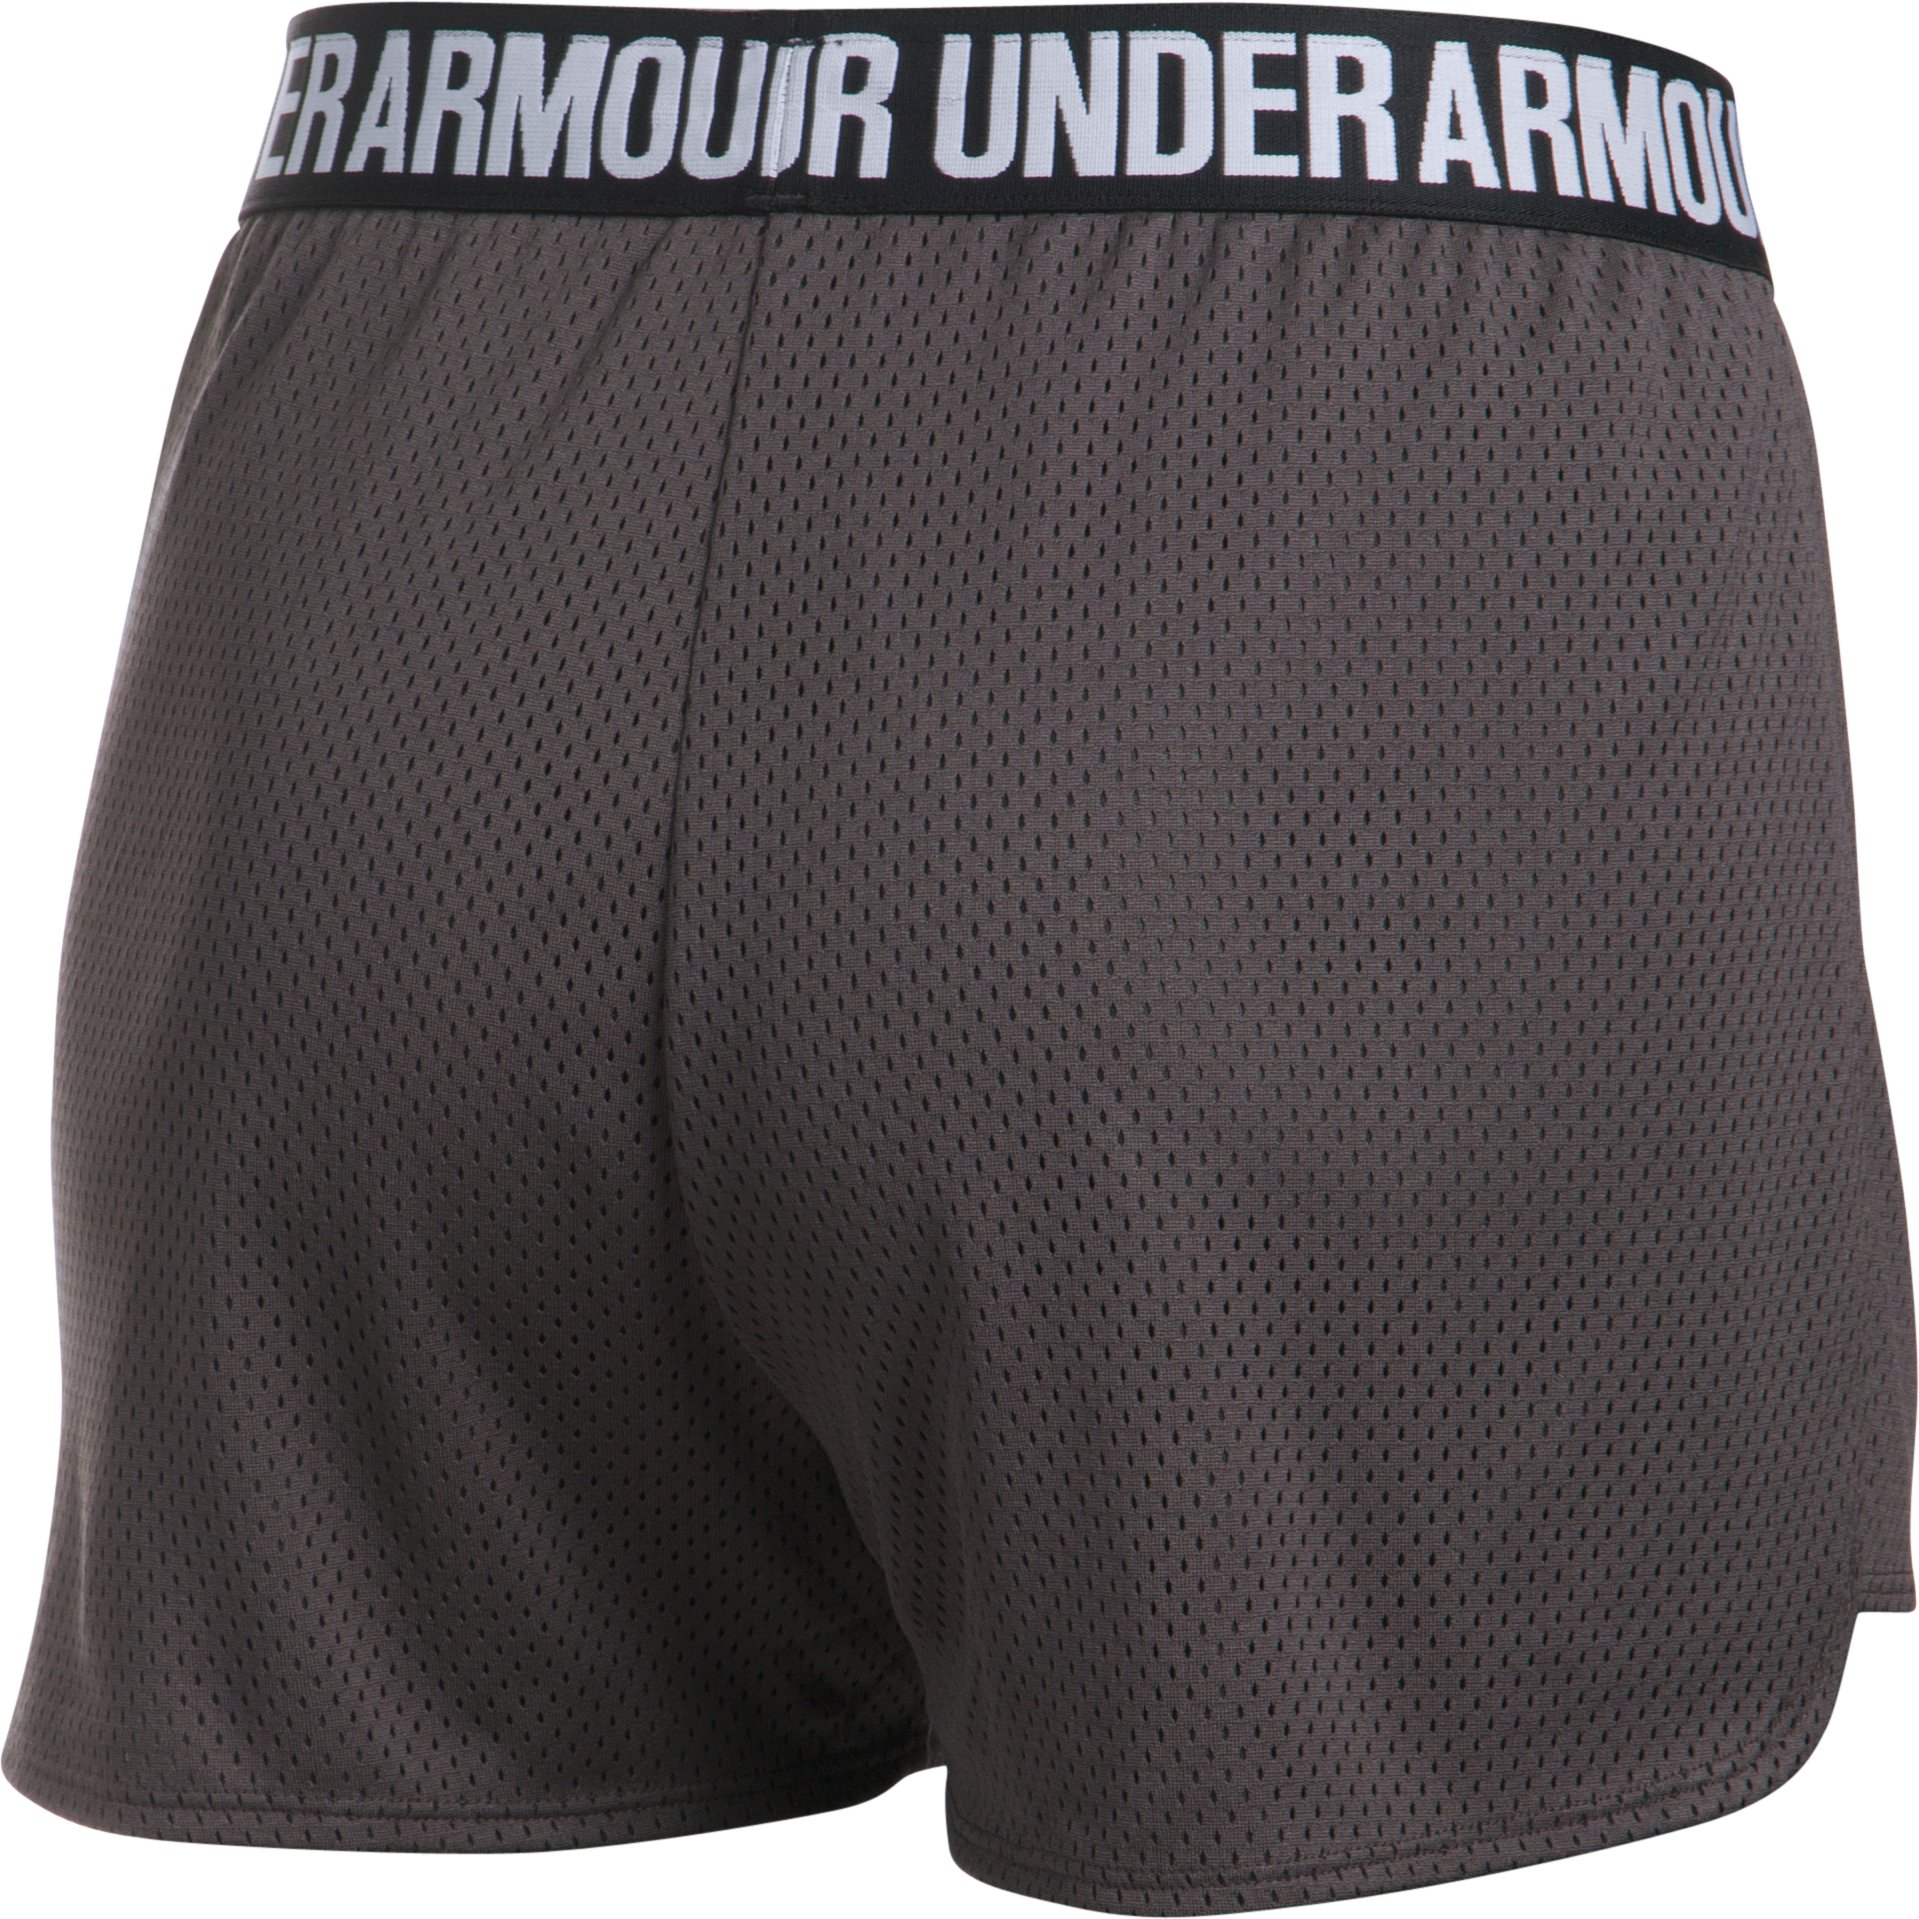 Women's UA Play Up Shorts 2.0 - Mesh, Charcoal,